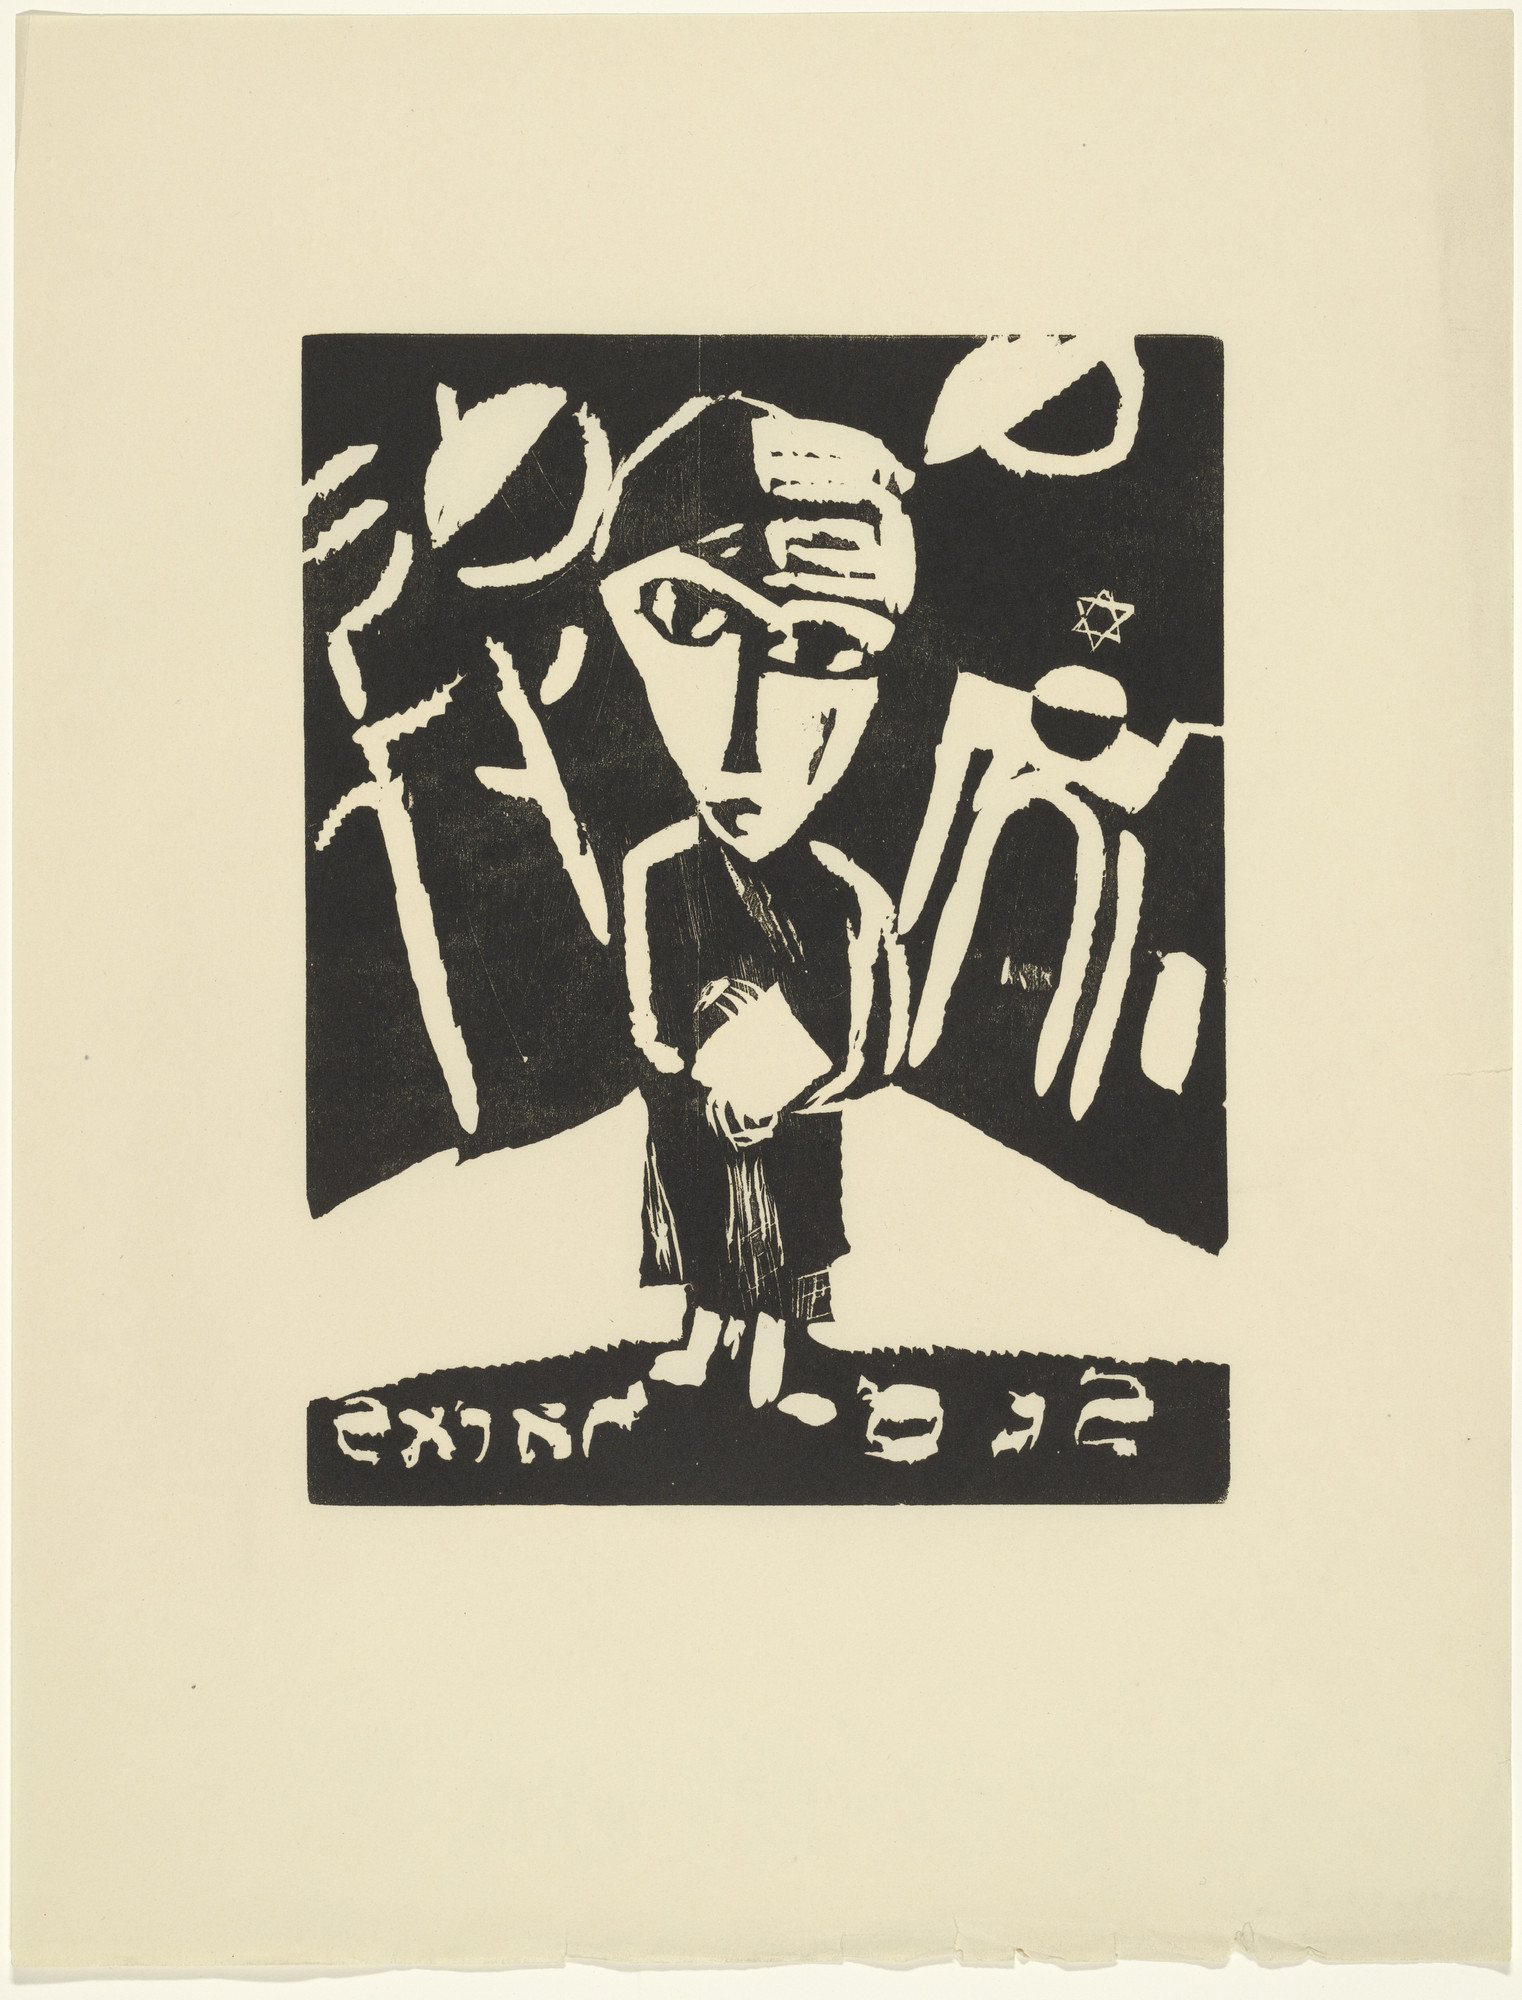 Lasar Segall. Praying Boy (Betender Knabe) from the periodical Kündung, vol. 1, no. 2 (February 1921). 1921 (executed 1920)